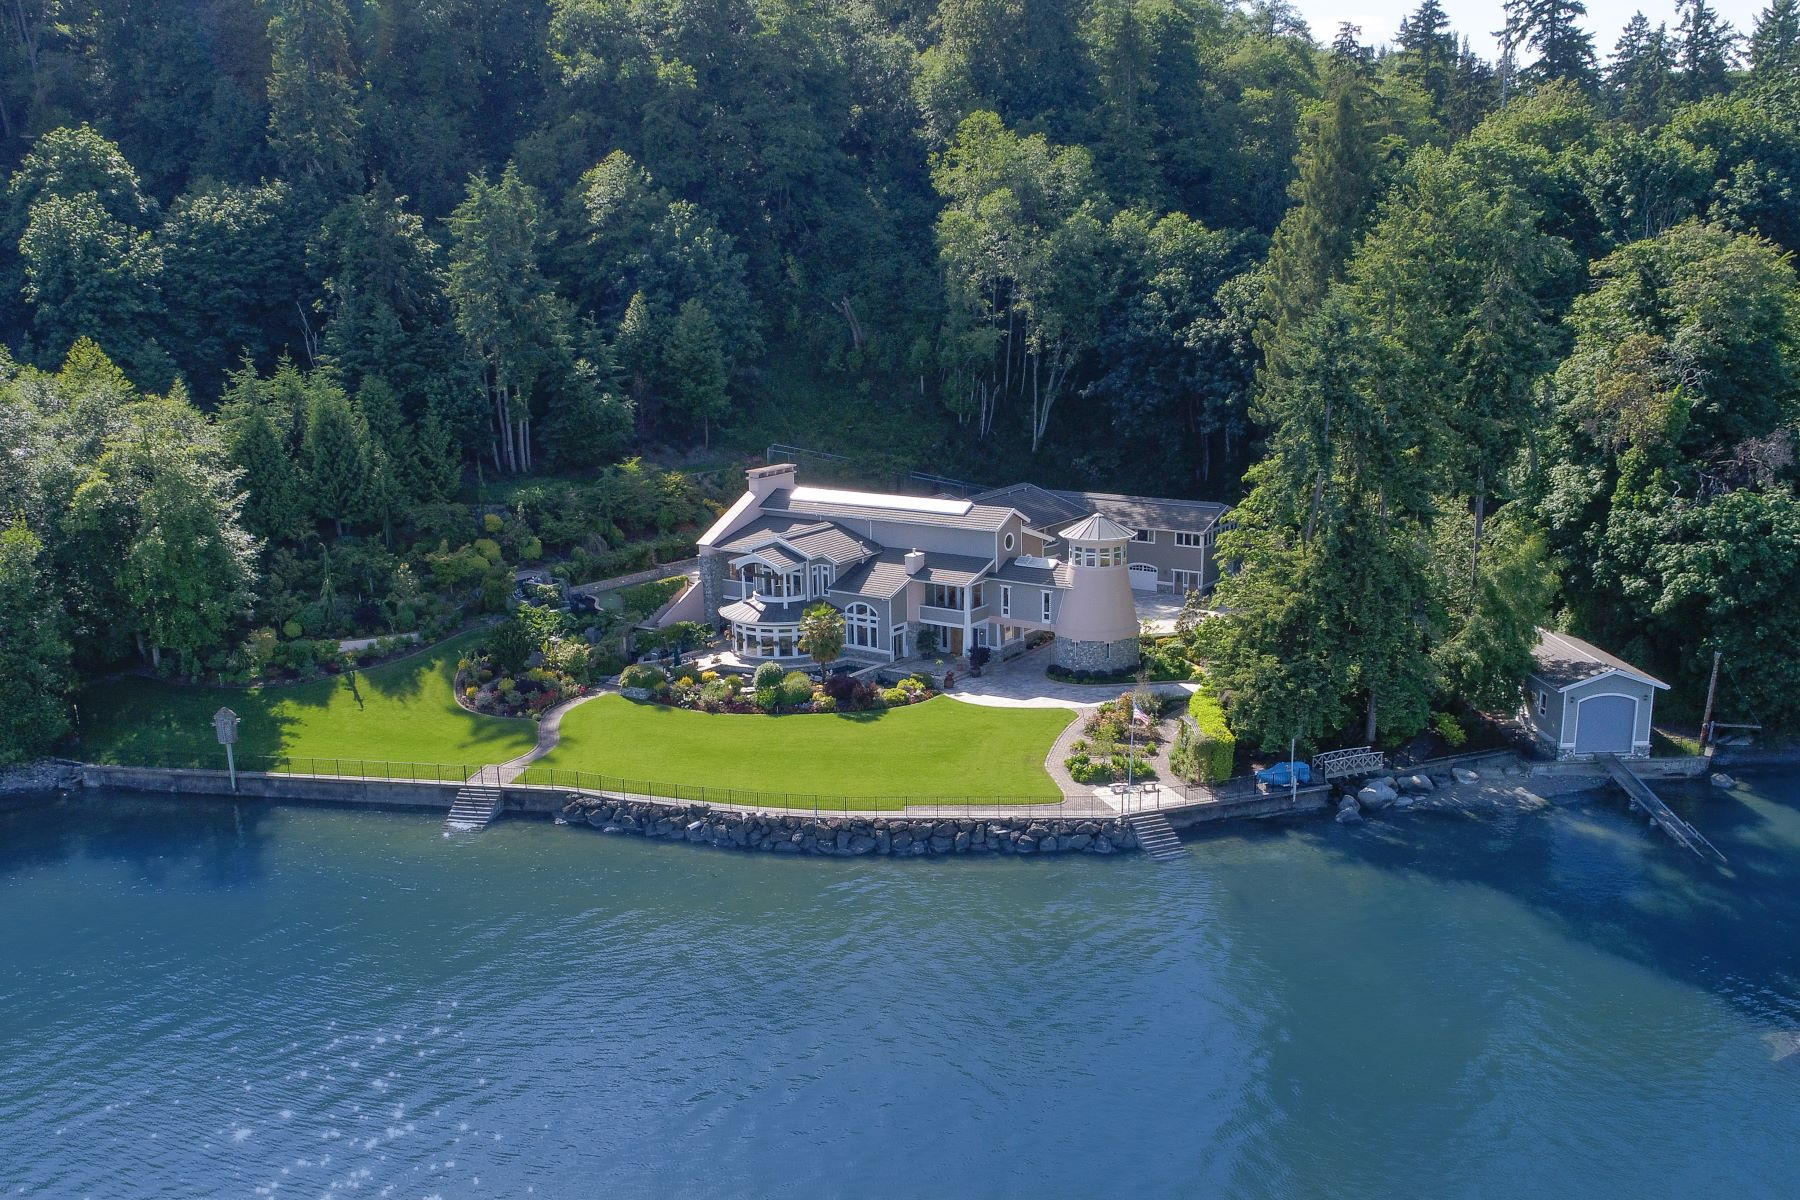 Maison unifamiliale pour l Vente à Private Palatial Waterfront 8415 SW Soper Road Vashon, Washington 98070 États-Unis